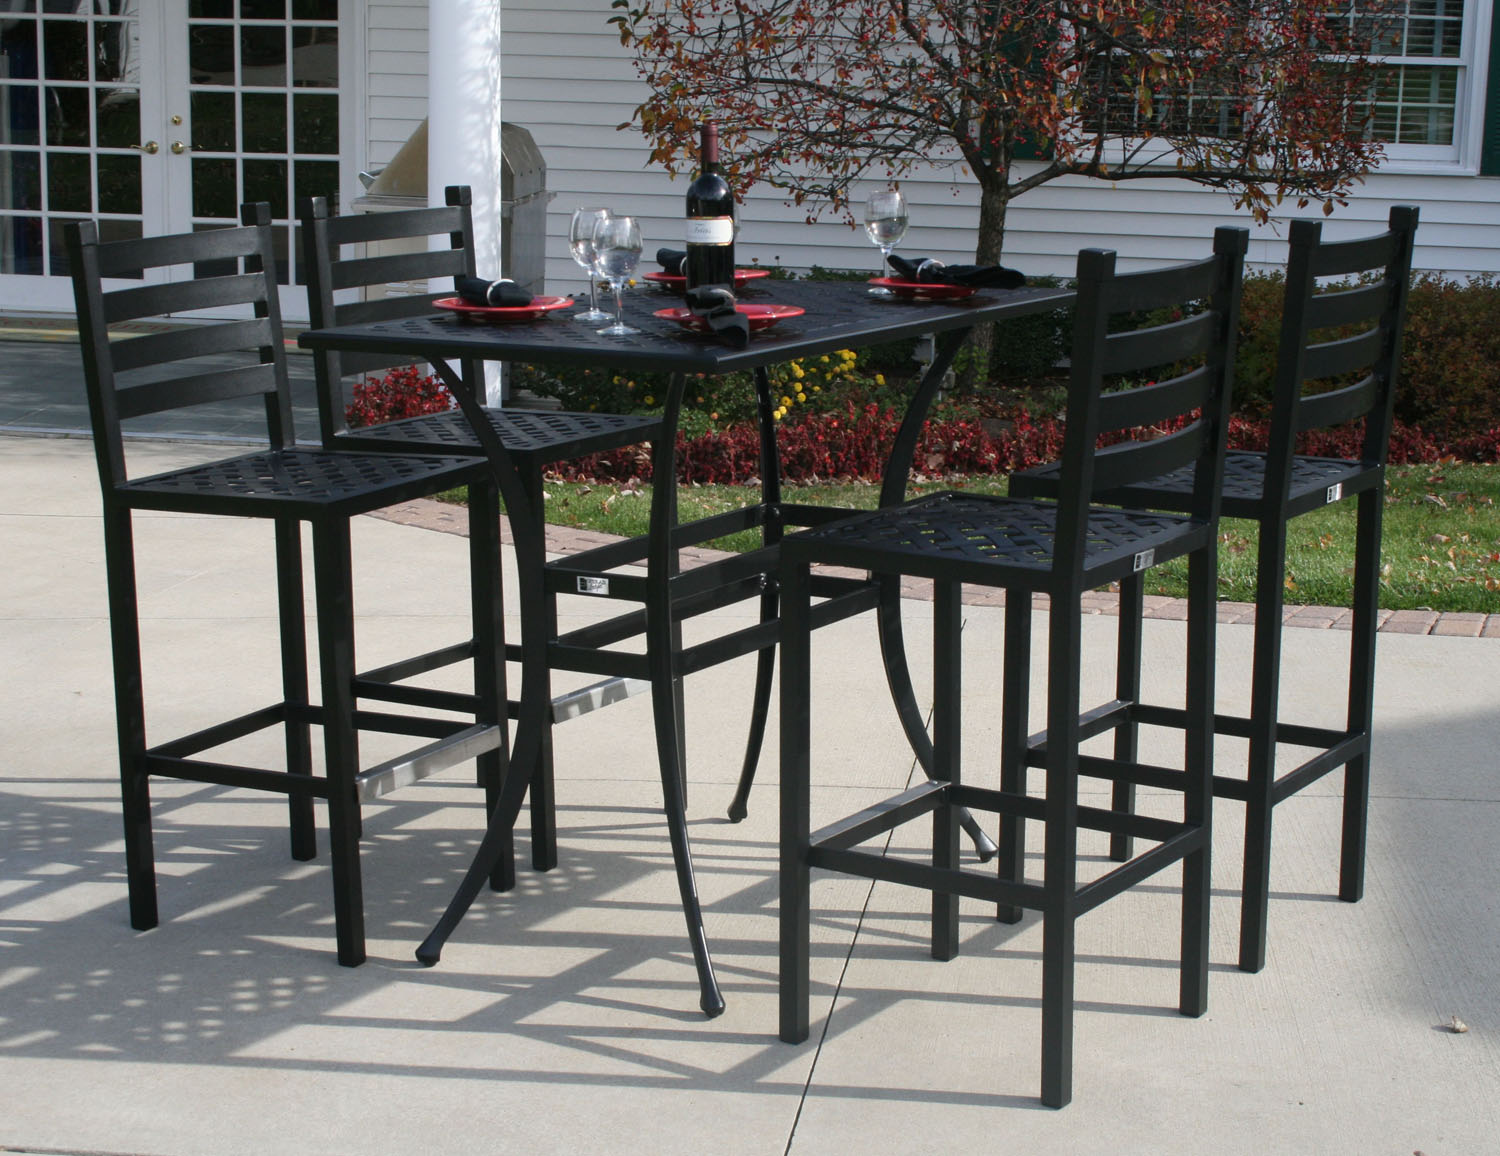 Ansley Luxury 4-Person All Welded Cast Aluminum Patio Furniture Bar Height  Set - Ansley Luxury 4-Person All Welded Cast Aluminum Patio Furniture Bar